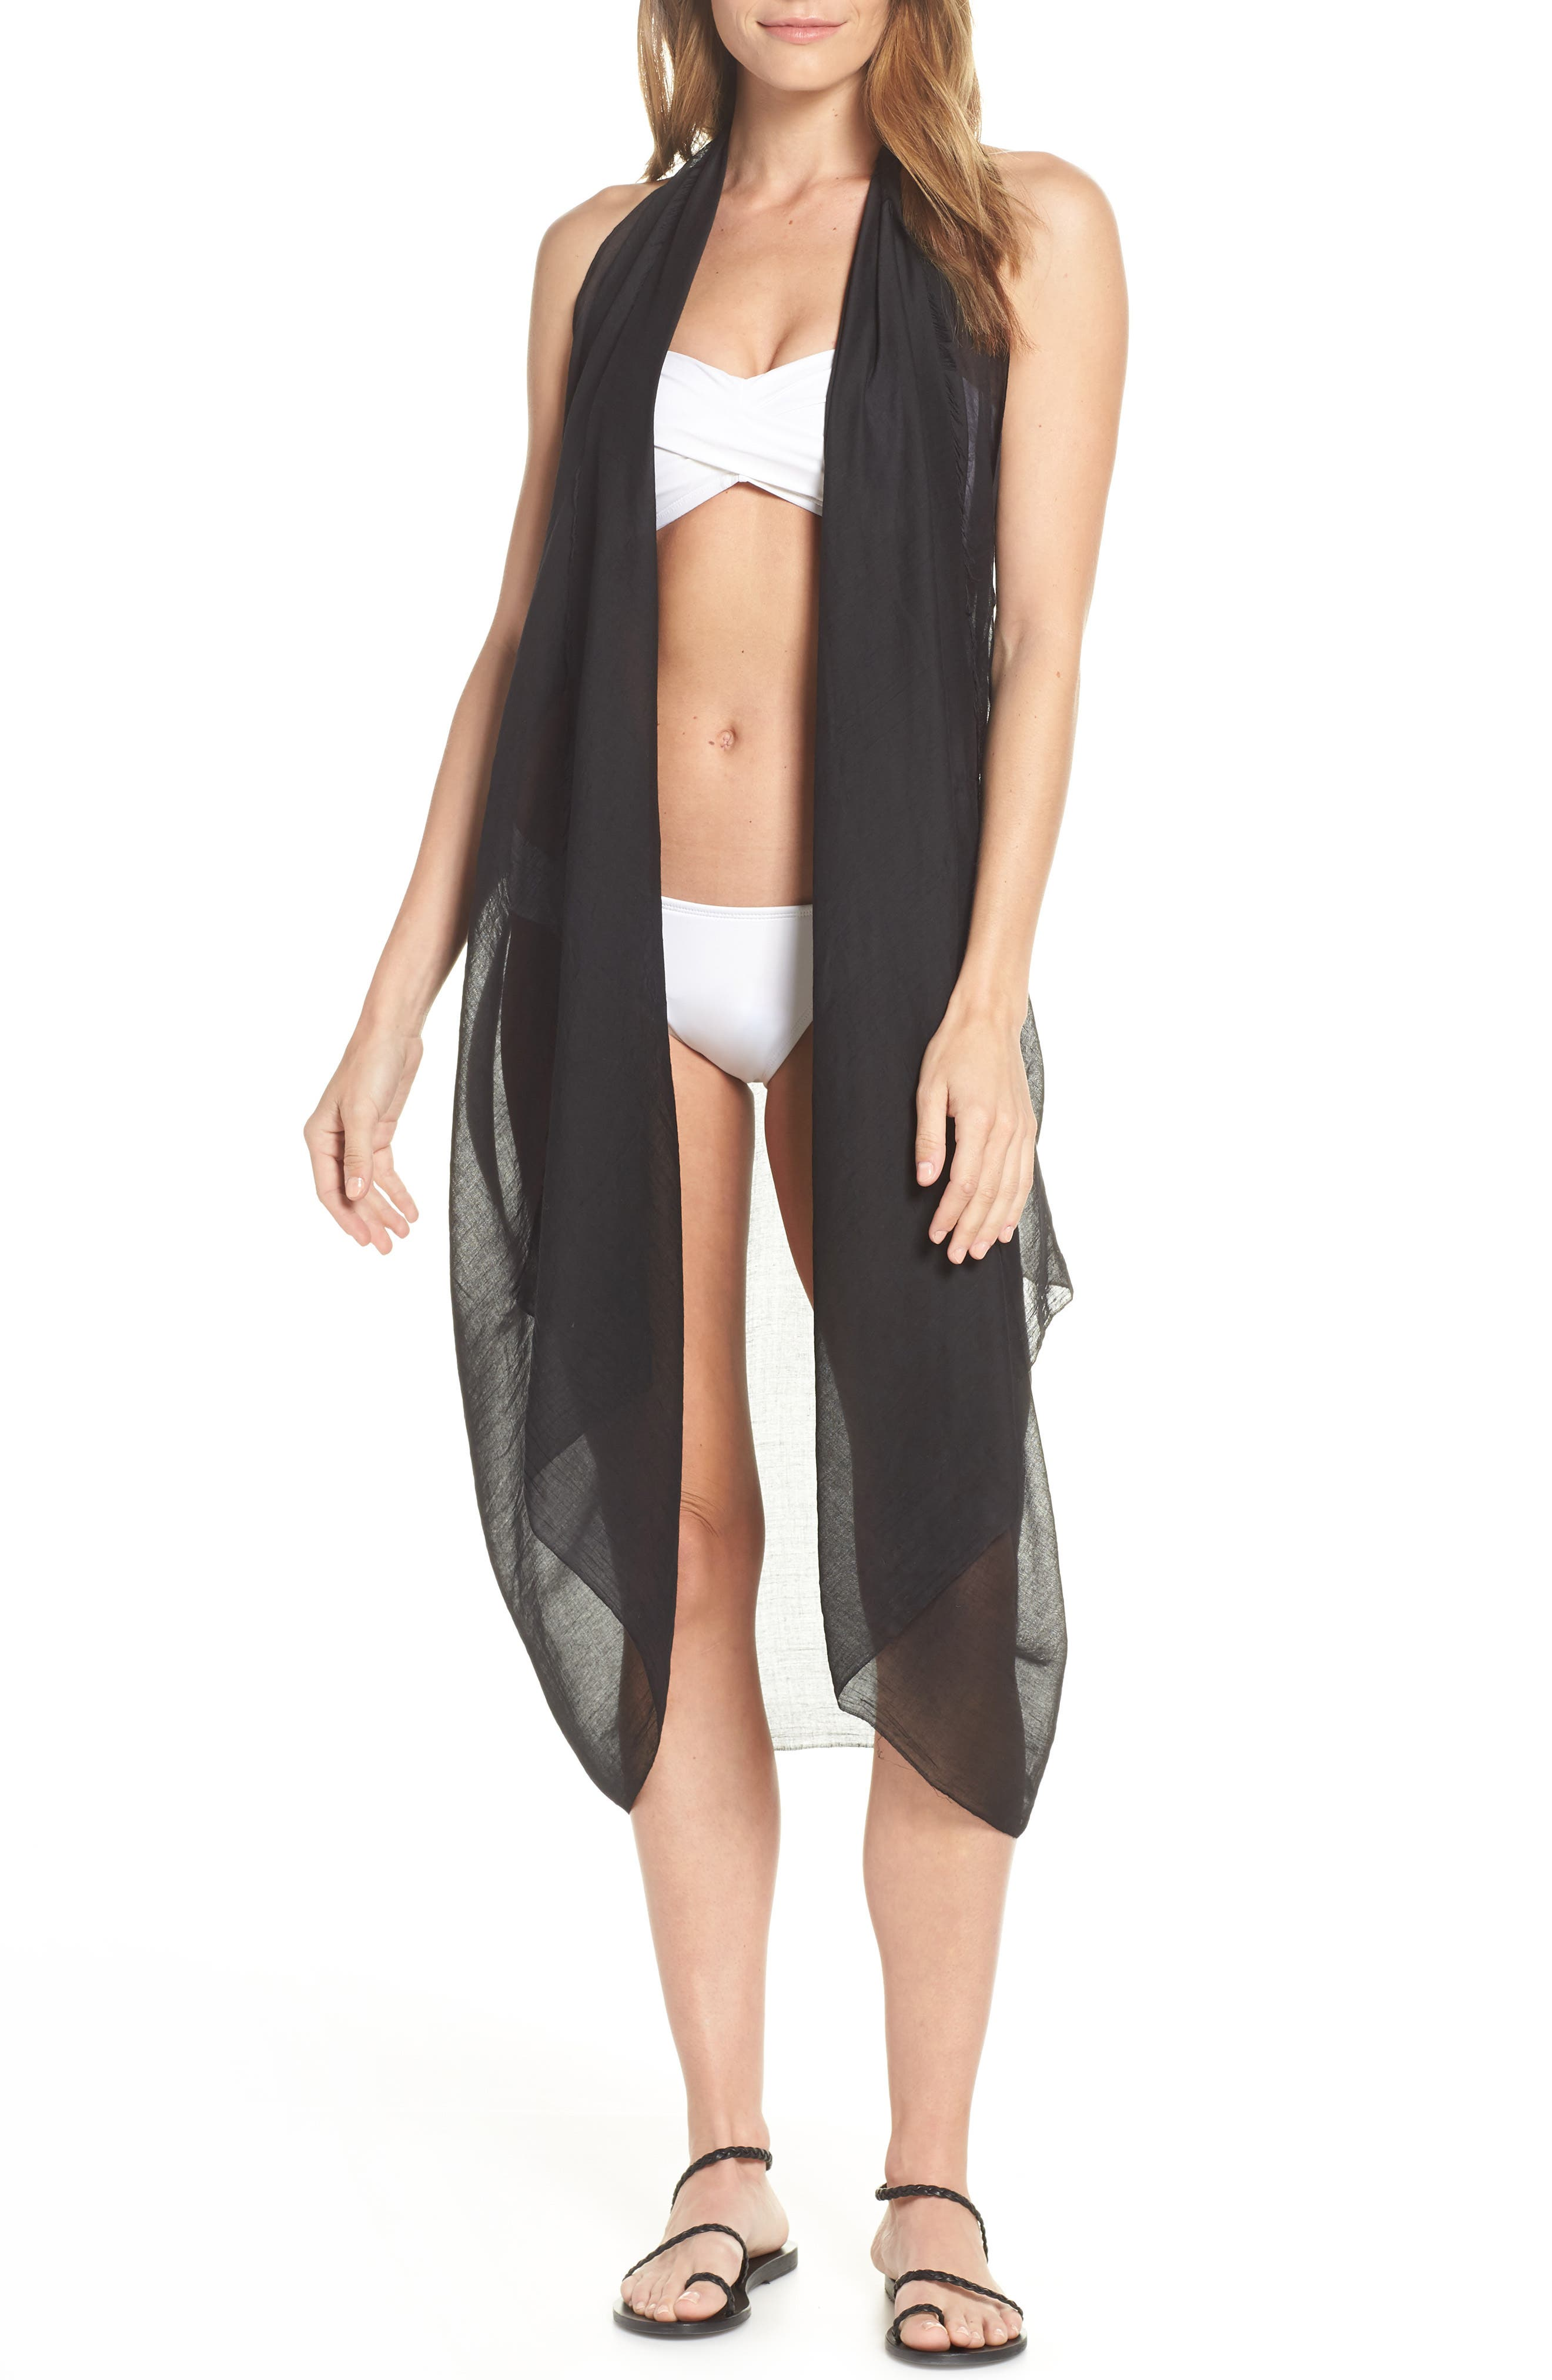 Pool To Party Spirit Cover-Up Vest, Size One Size - Black